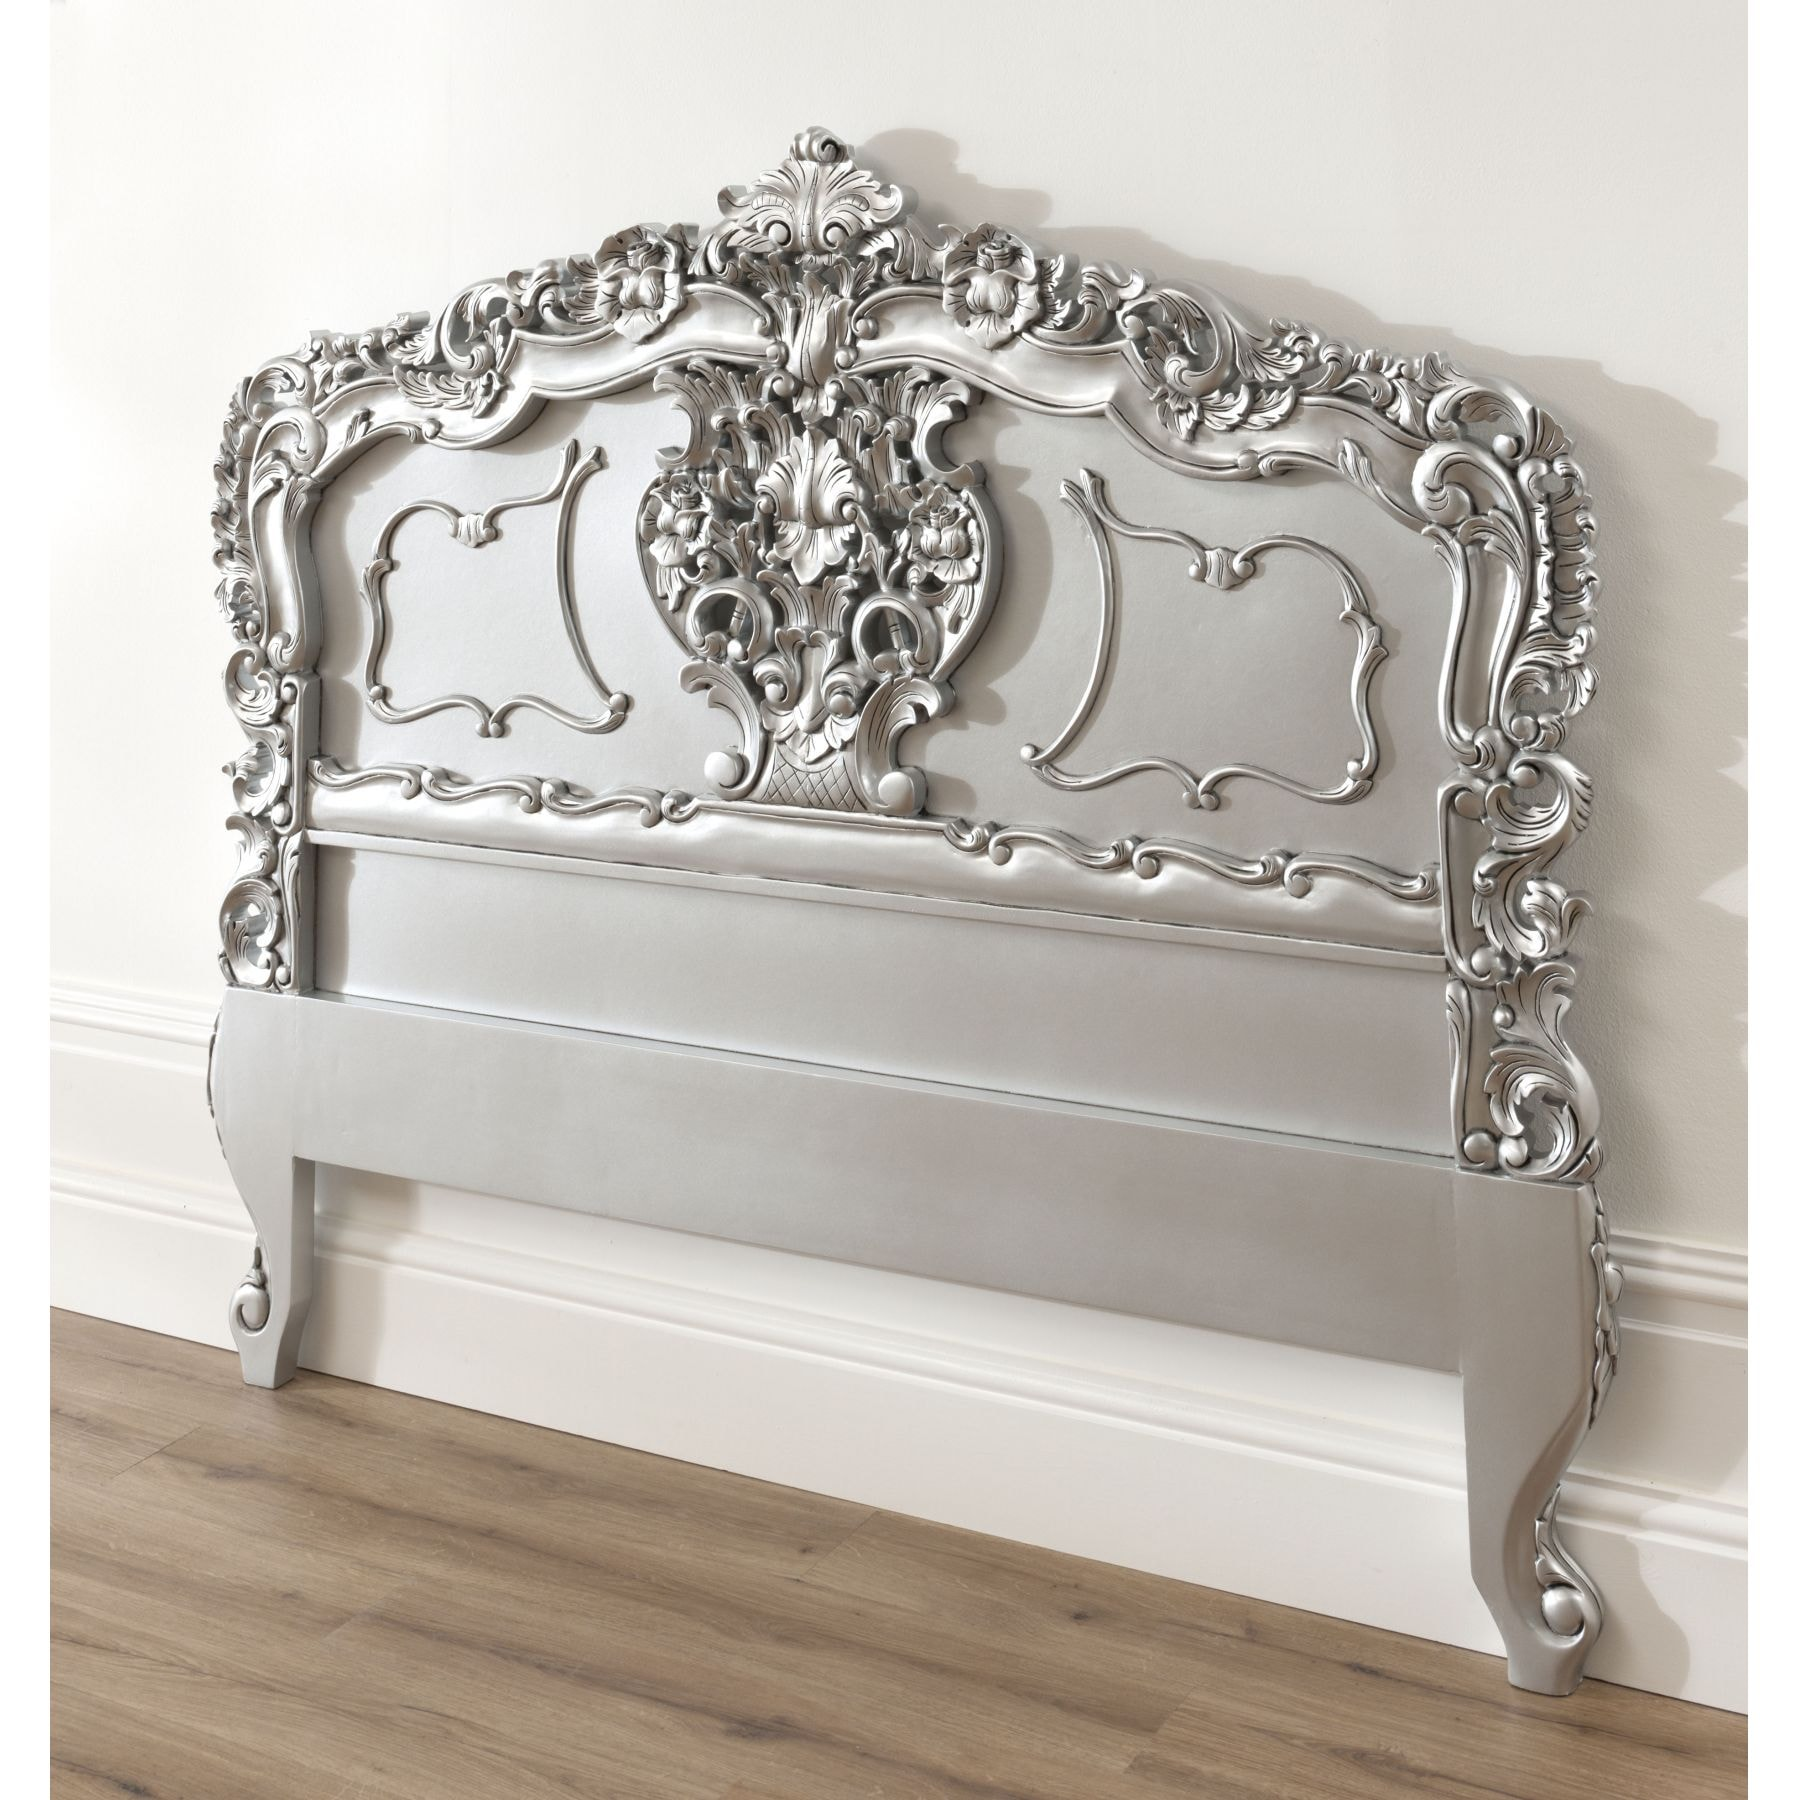 silver rococo antique french headboard available now, Headboard designs